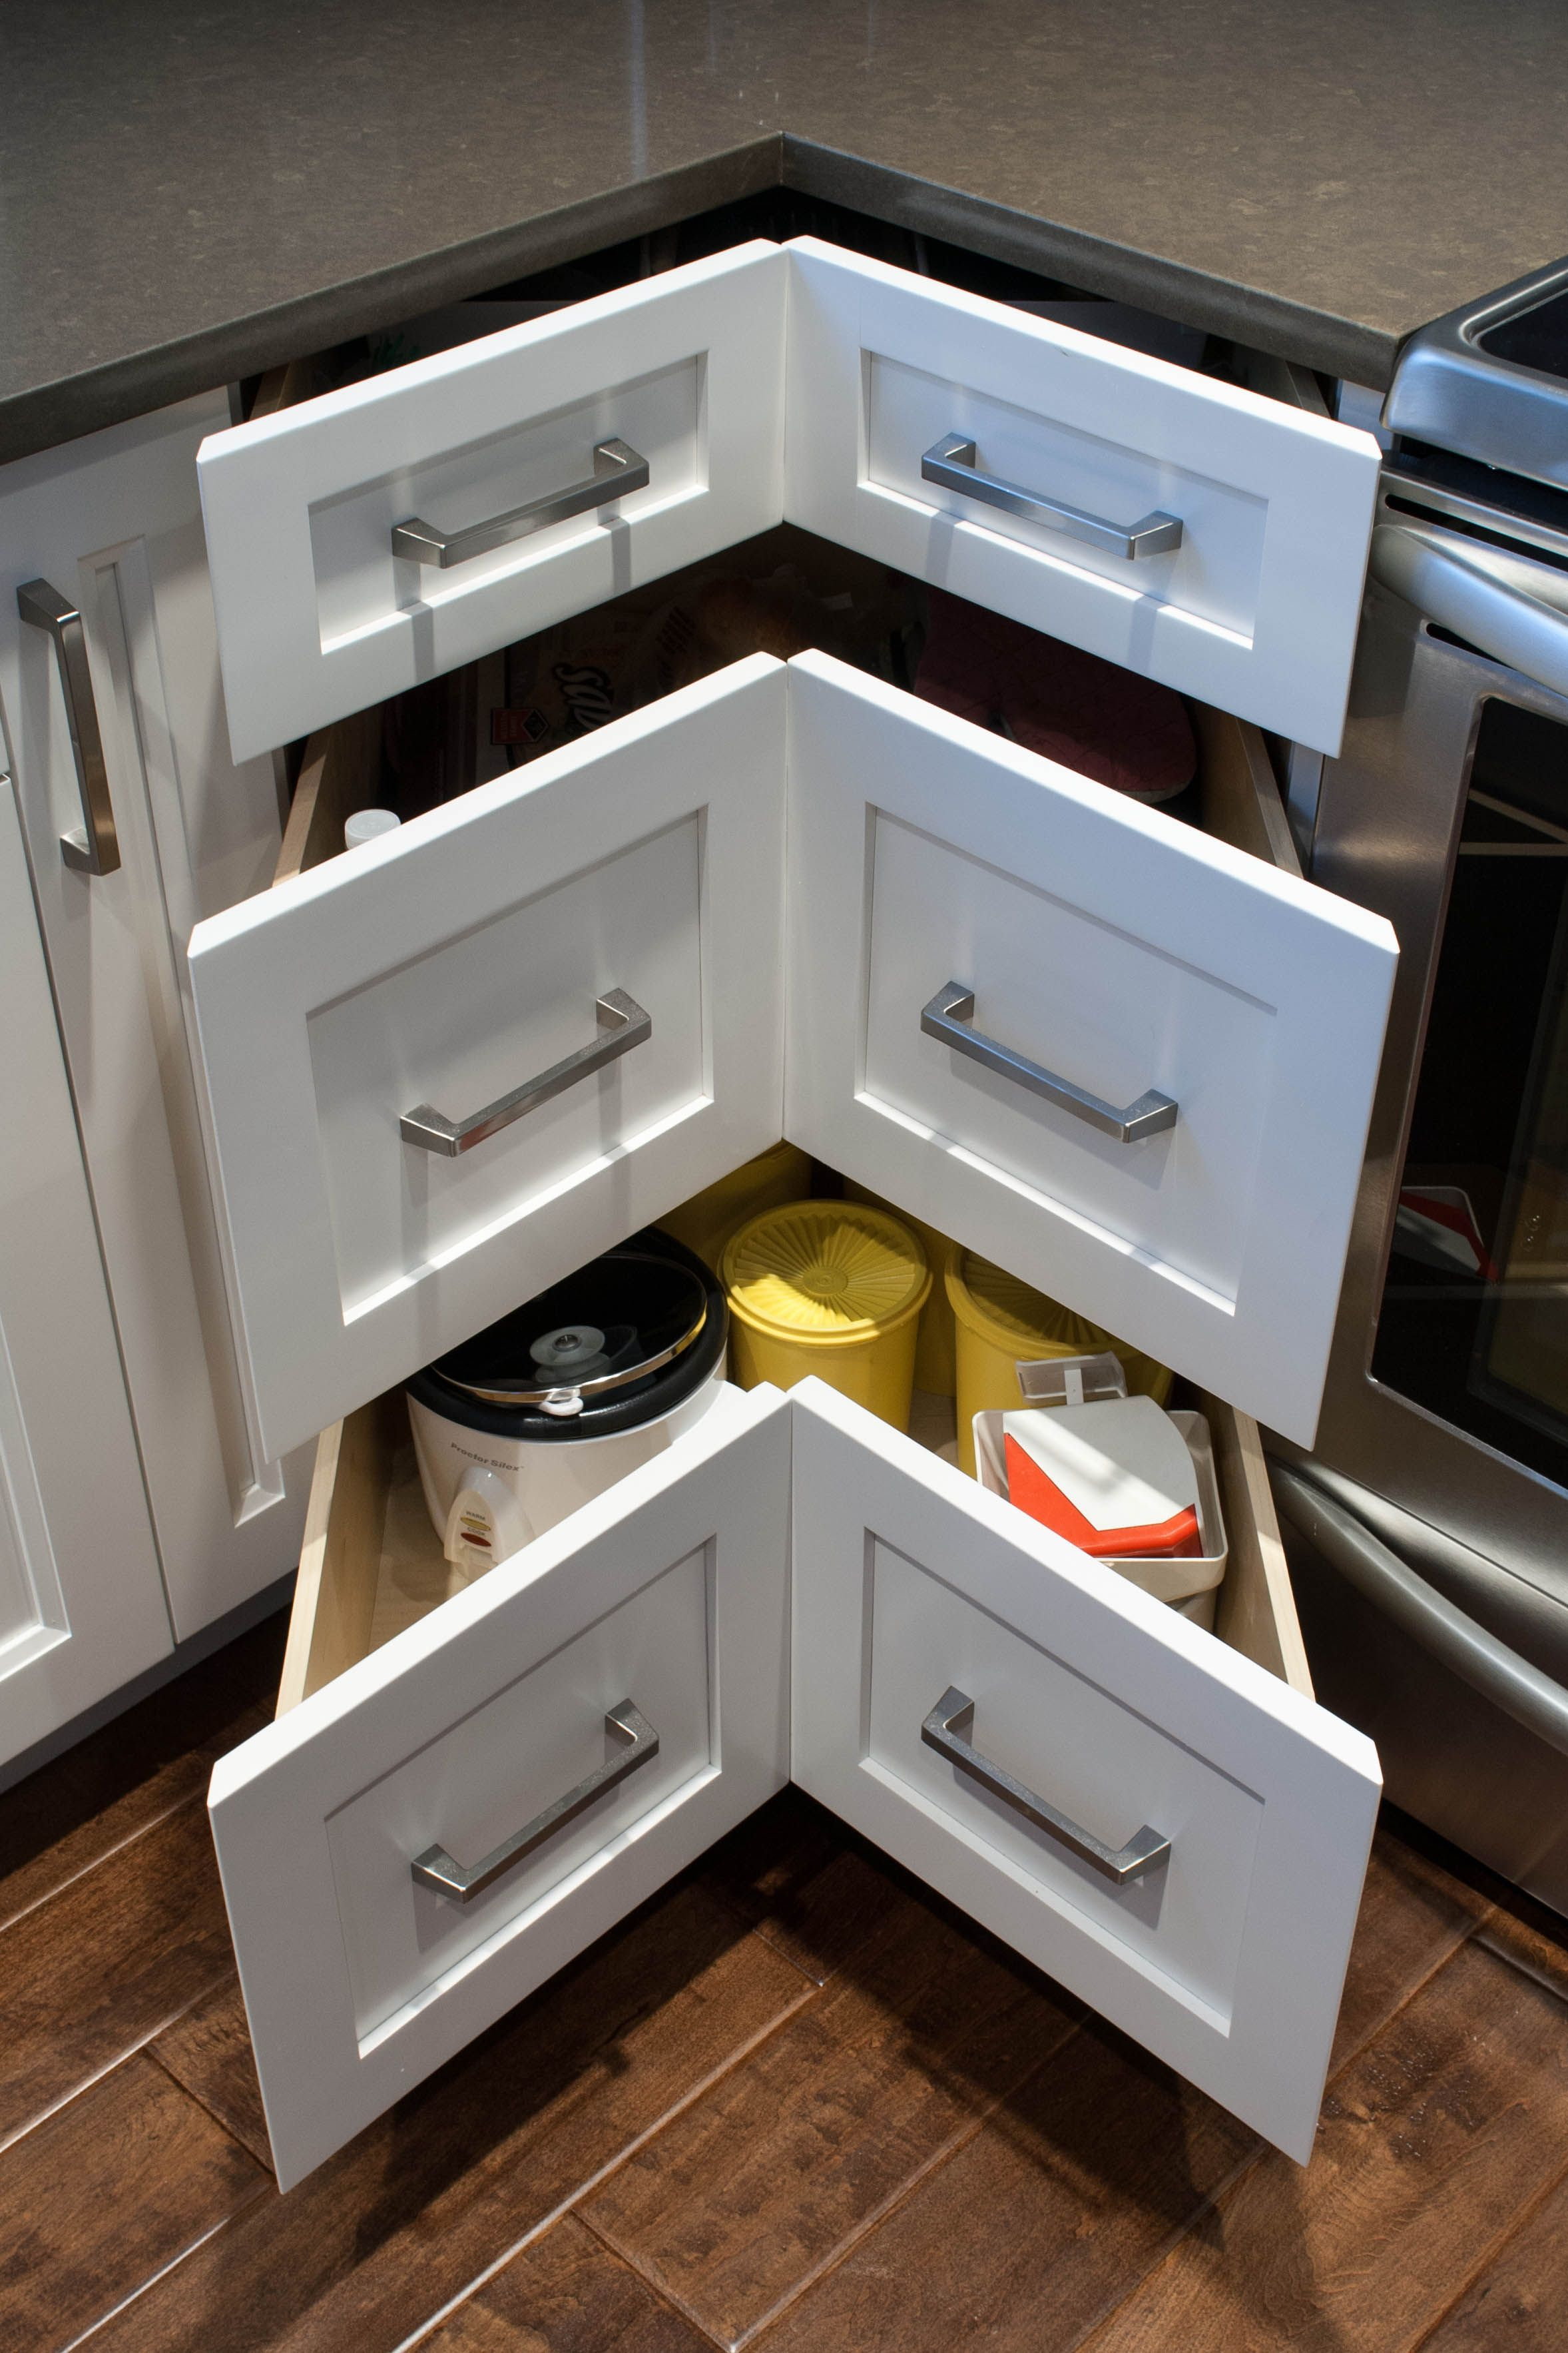 slides replacement hardware for cabi cabinets gallery kitchen drawers interior drawer luxury of best mikemsite kitchens cabinet